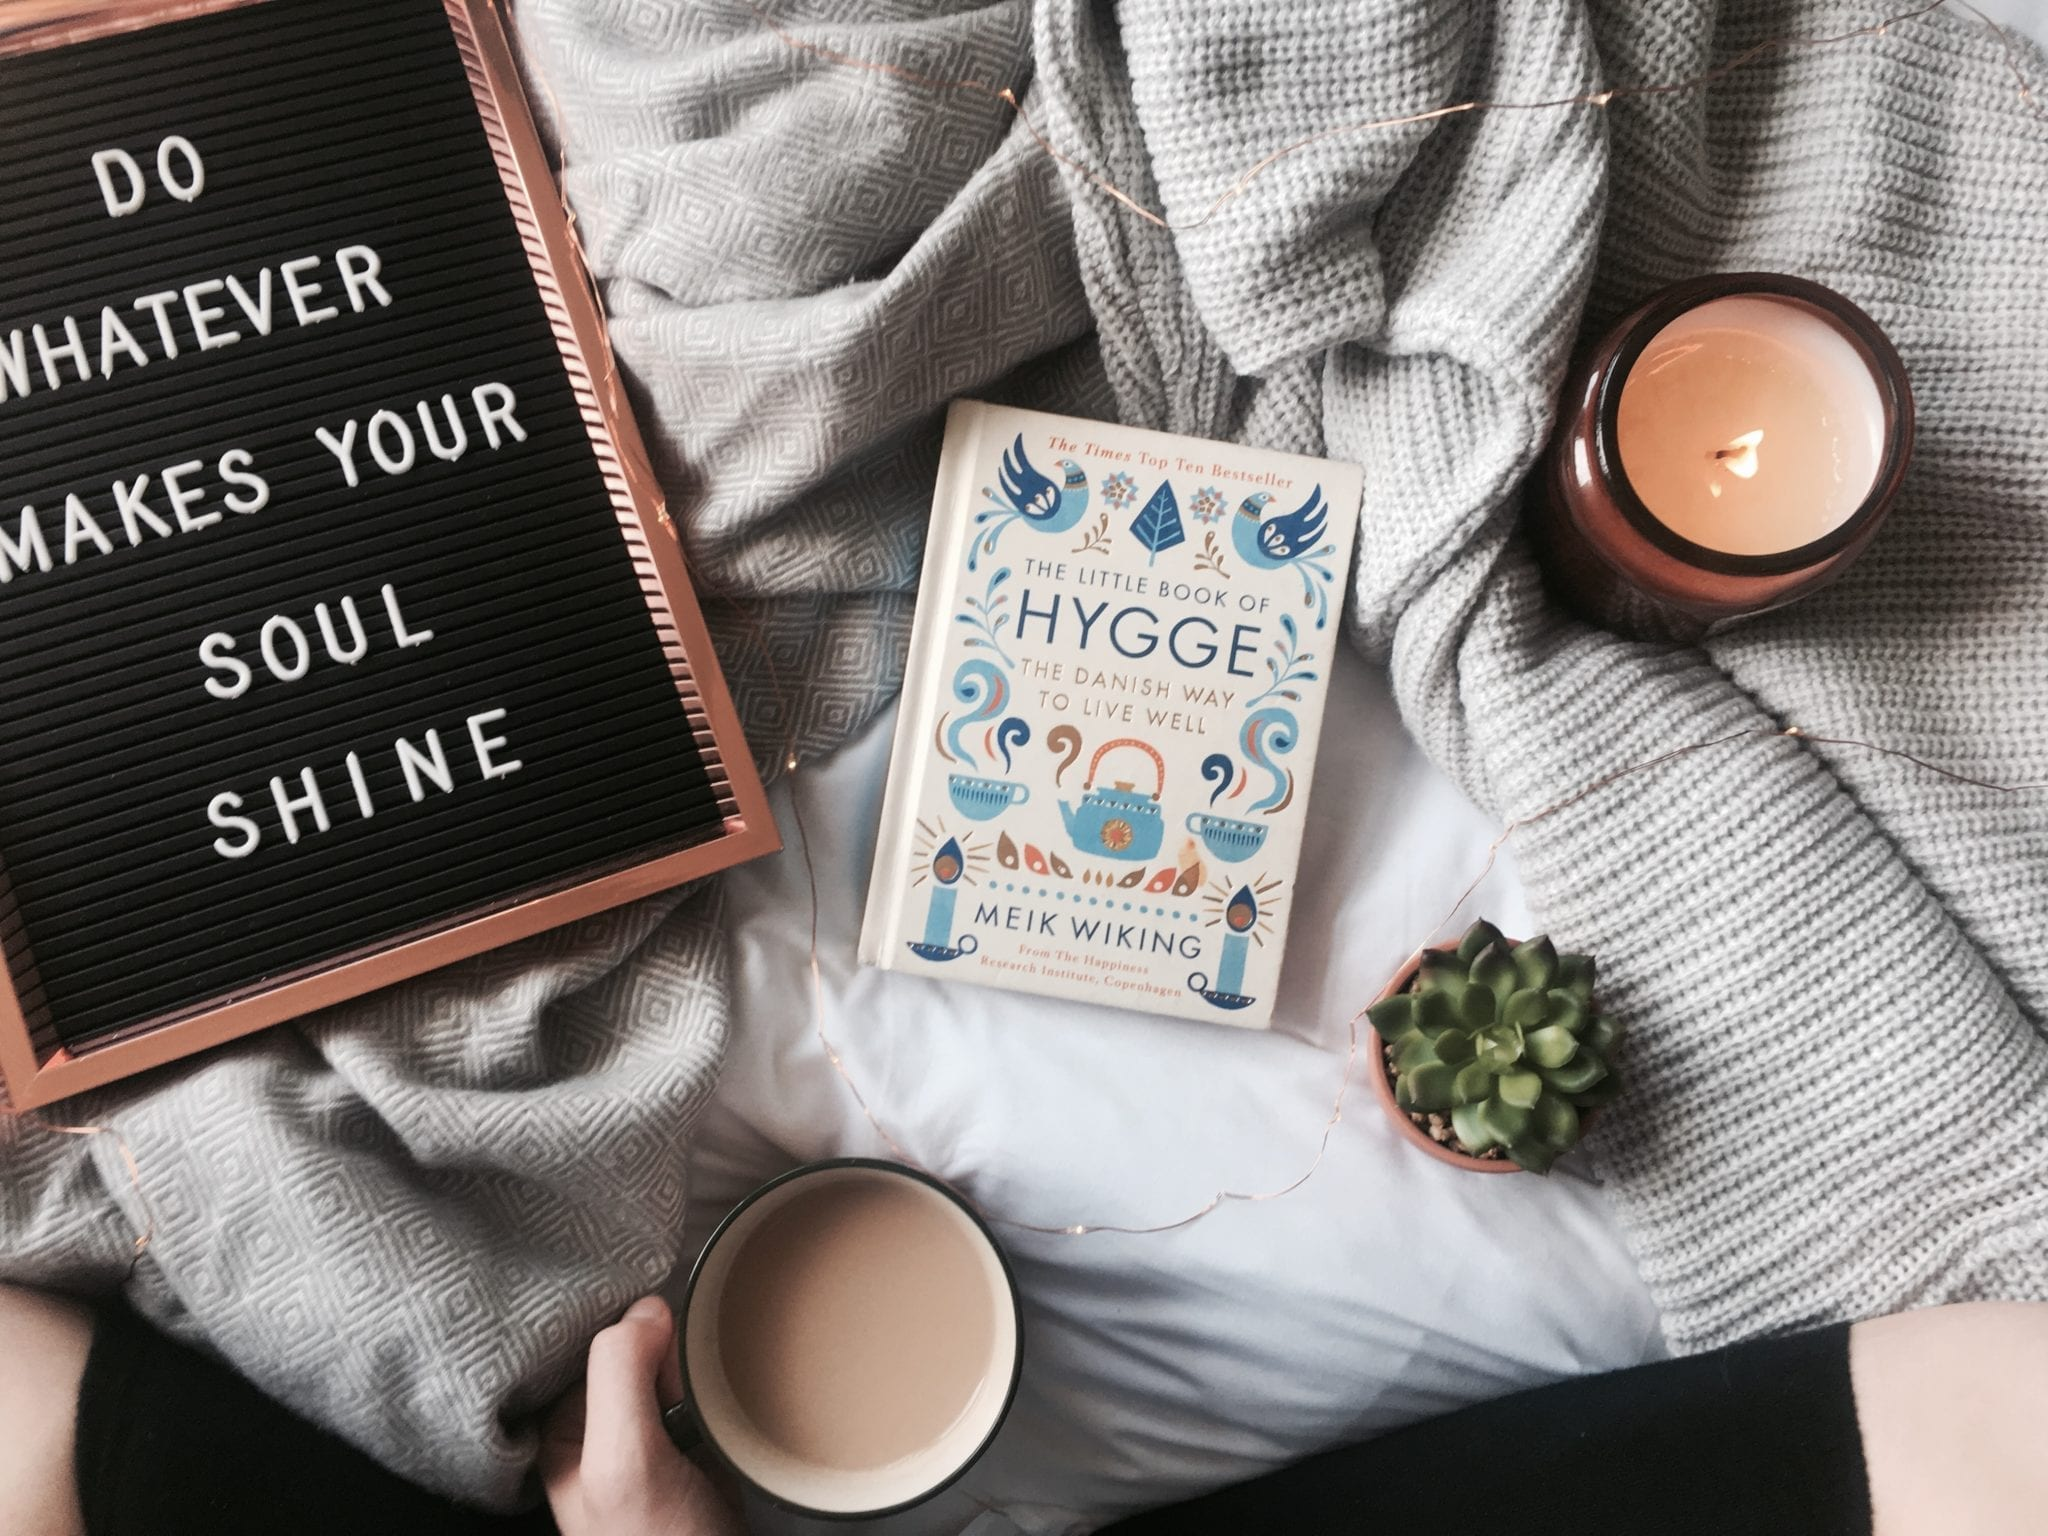 Gal Pal's 10 top Cozy-Comfy items- Let's Get Hygge with it!